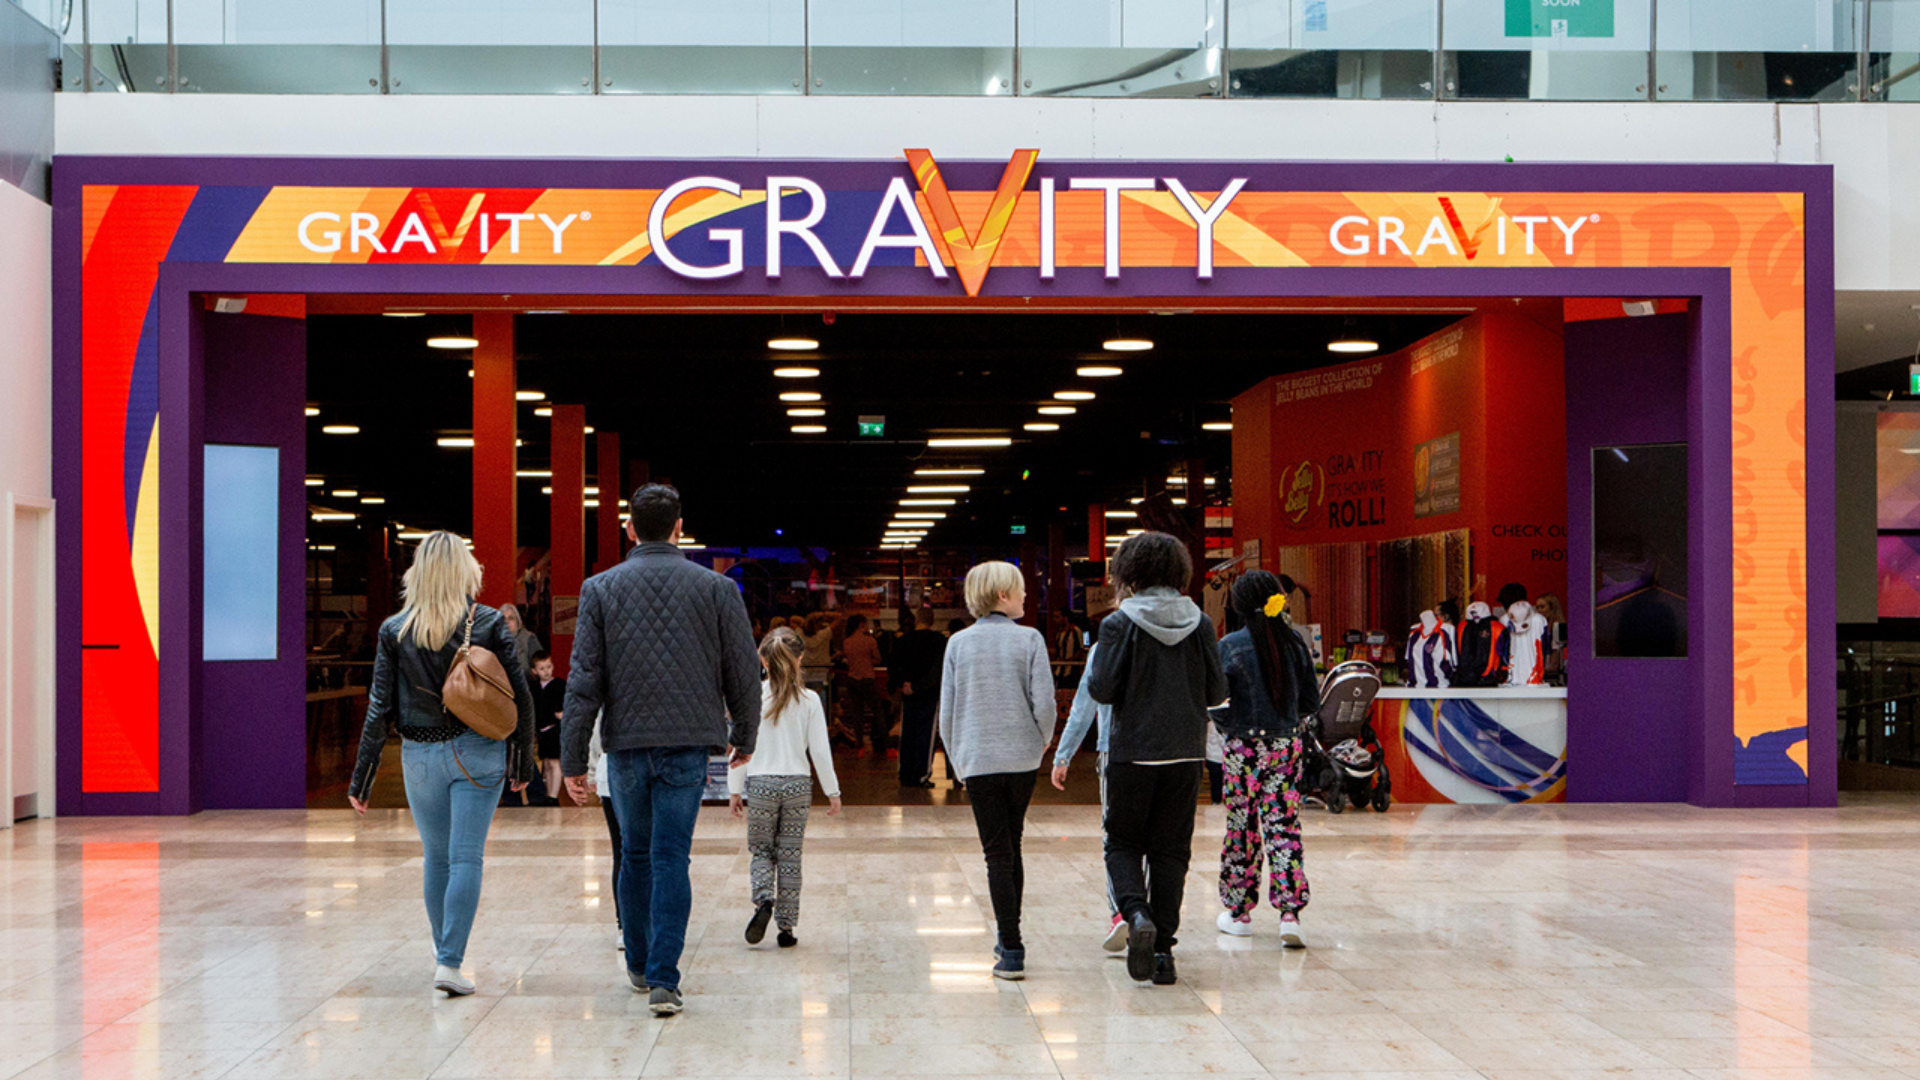 New Gravity Franchisee signs up at premier UK location